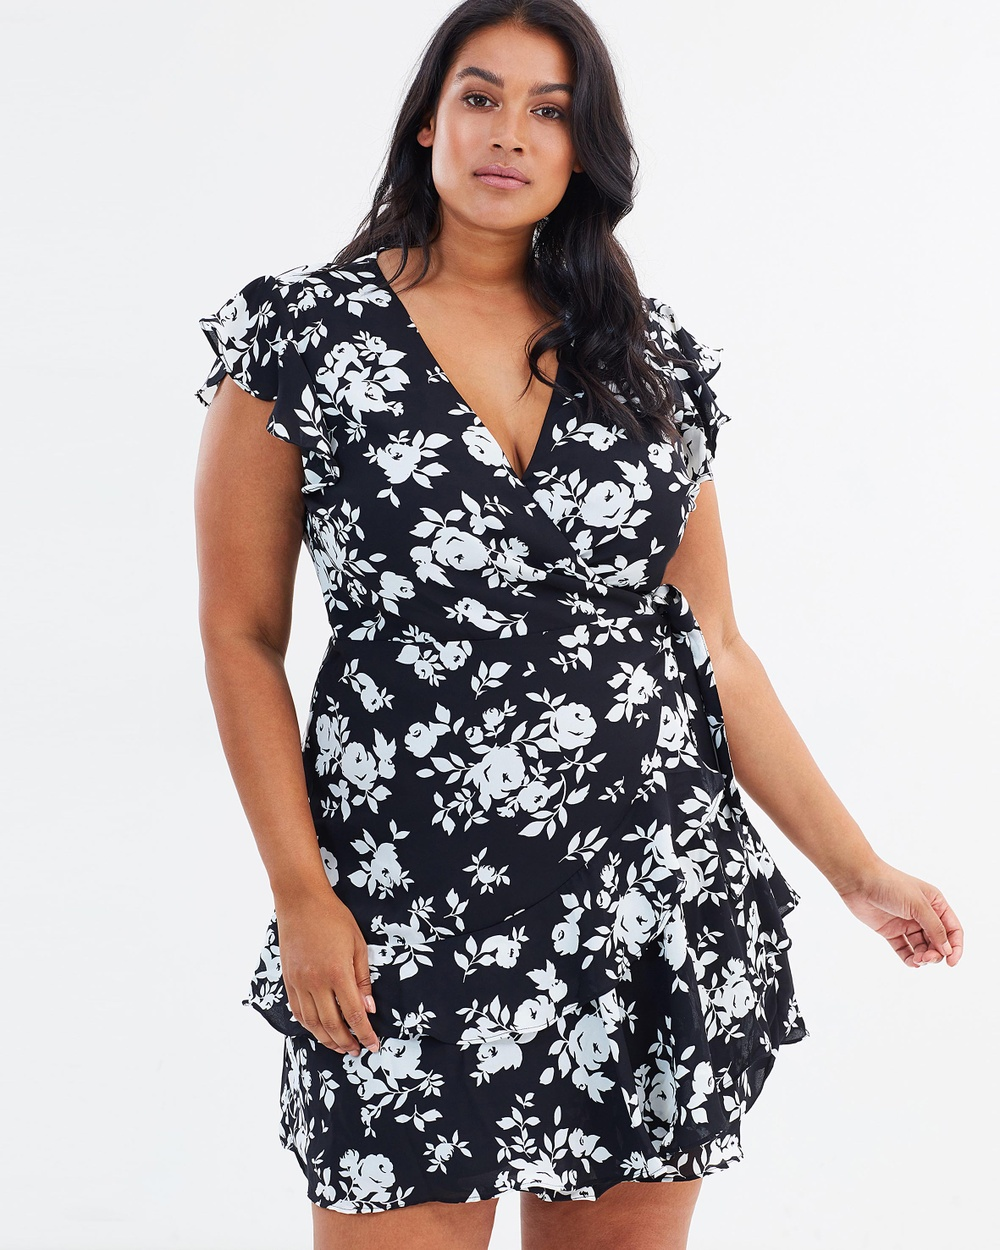 Atmos & Here Curvy ICONIC EXCLUSIVE Milly Wrap Dress Printed Dresses Black Base White Roses ICONIC EXCLUSIVE Milly Wrap Dress